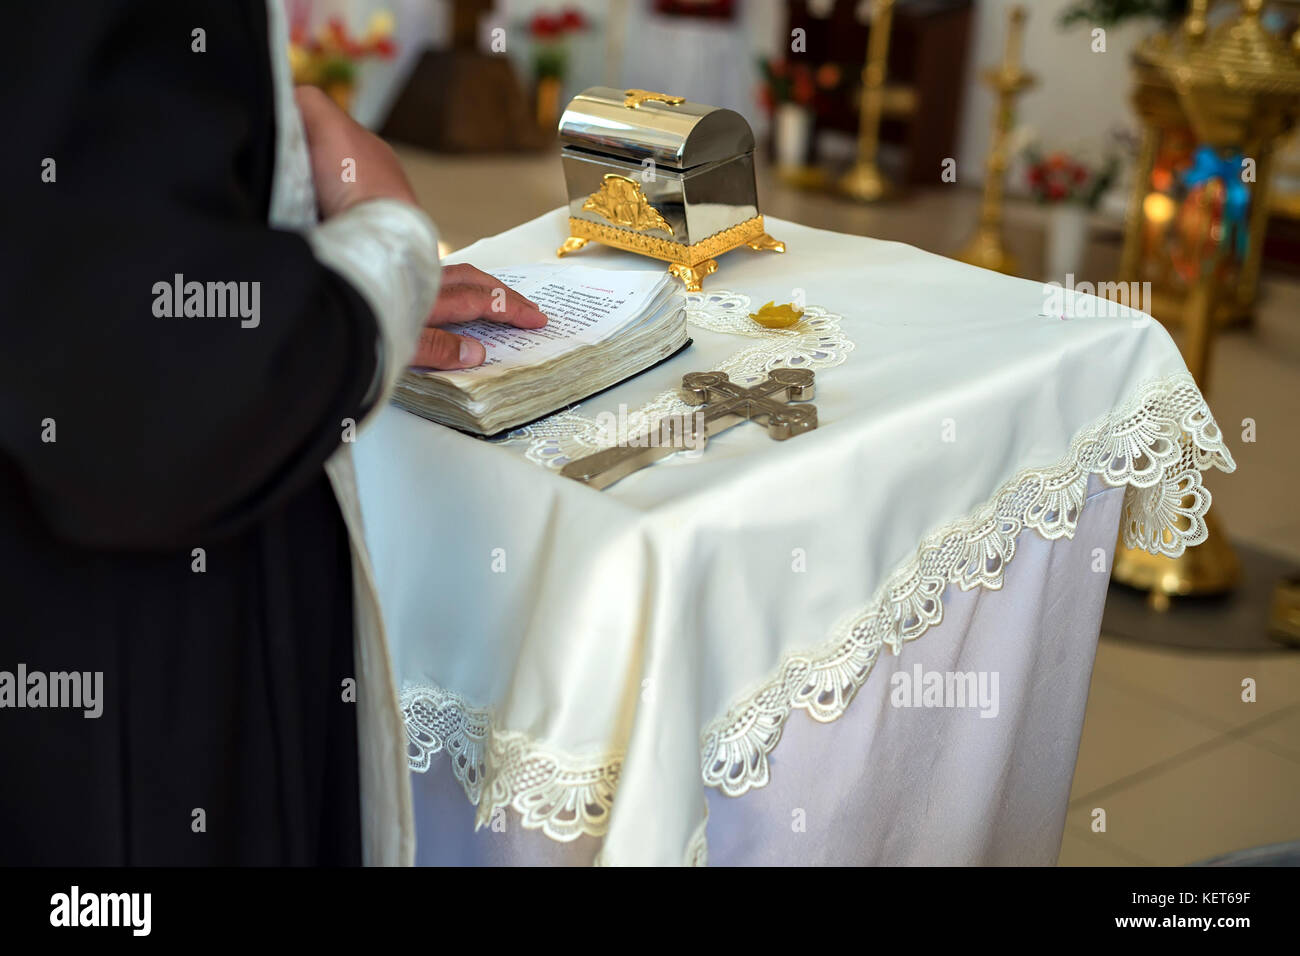 Orthodox christian priest performs rite - Stock Image